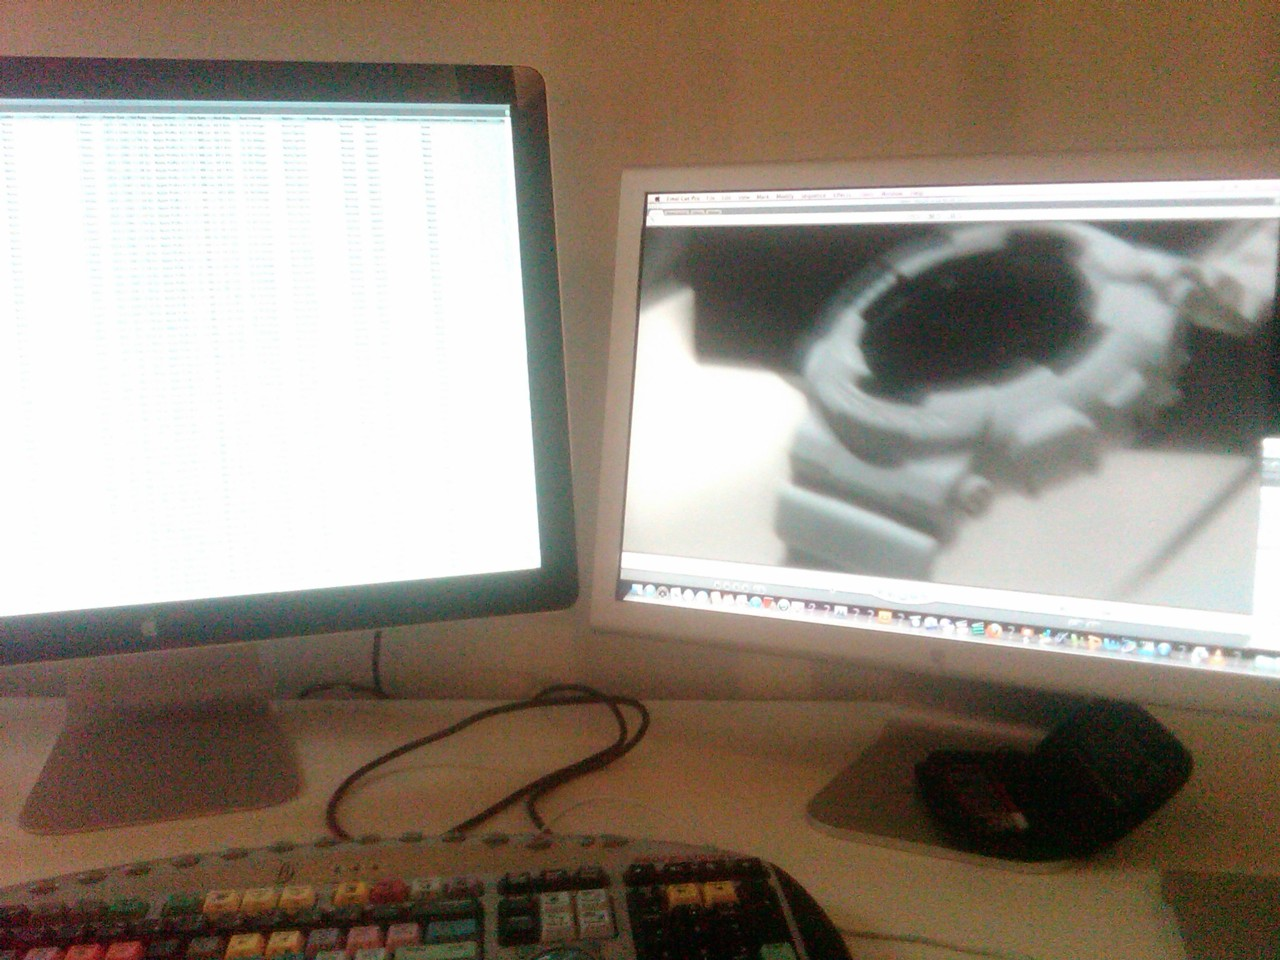 Desk of the Day: GDF-100 x Dual Screen Word to NS.